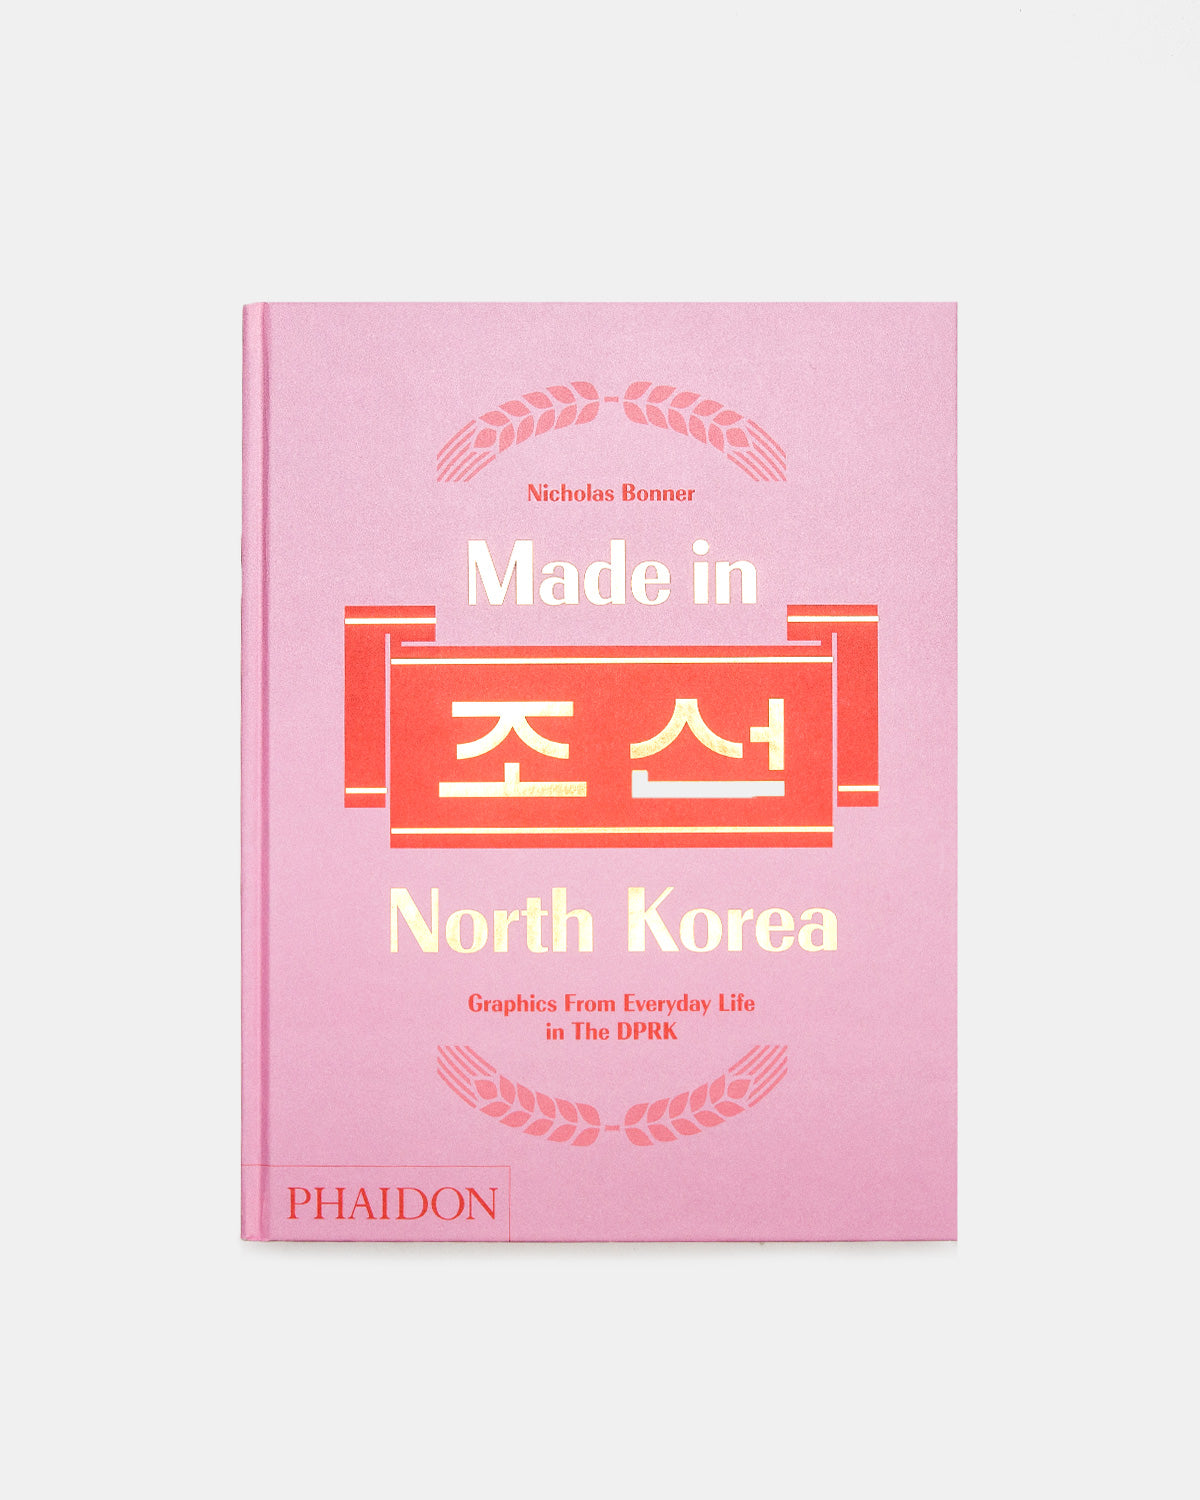 Phaidon - Made in North Korea